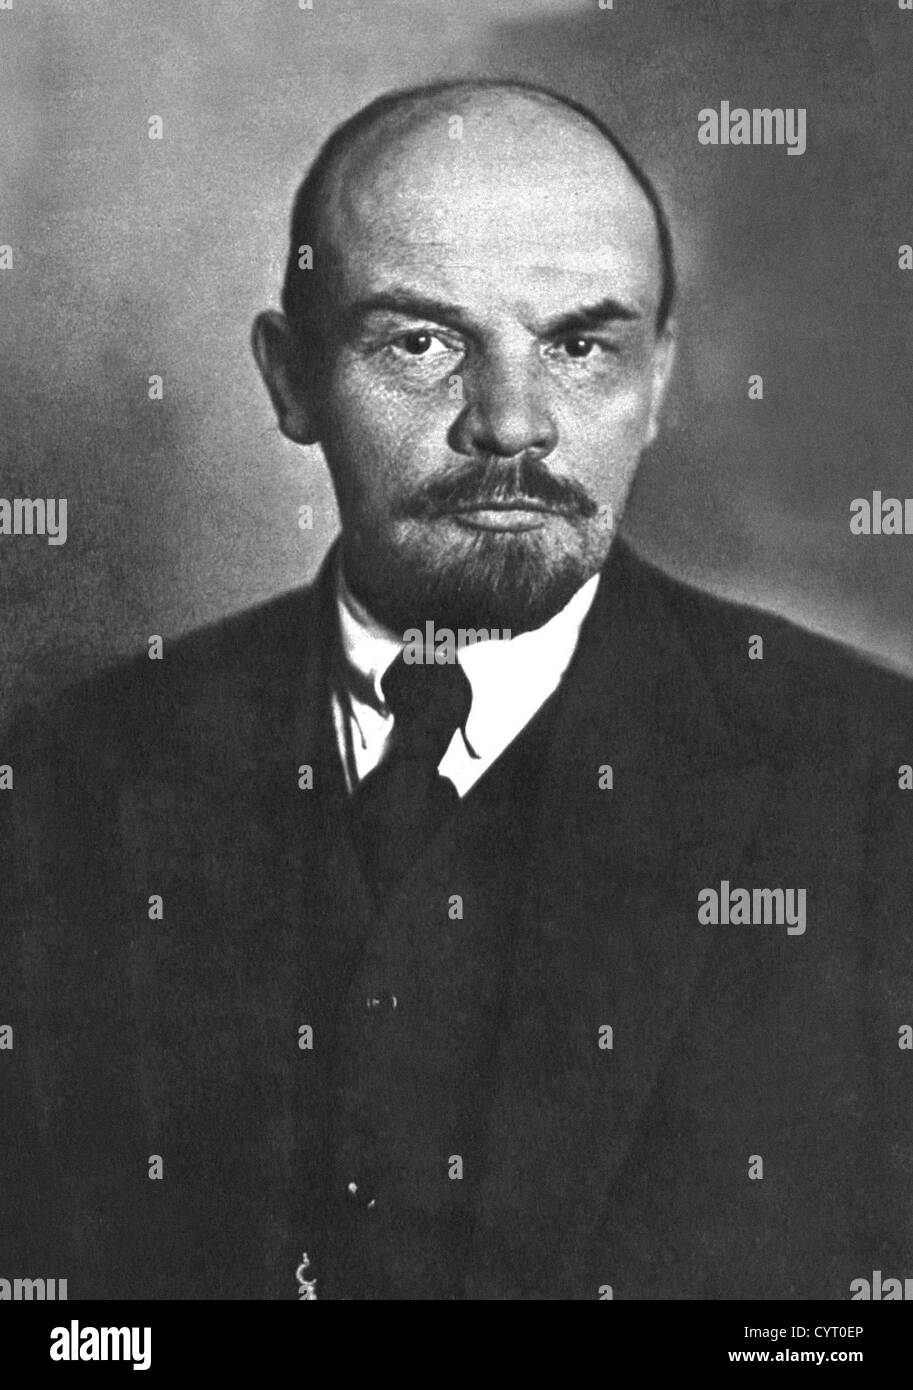 Vladimir Ilyich Lenin was a Russian communist revolutionary, politician and political theorist who served as the - Stock Image